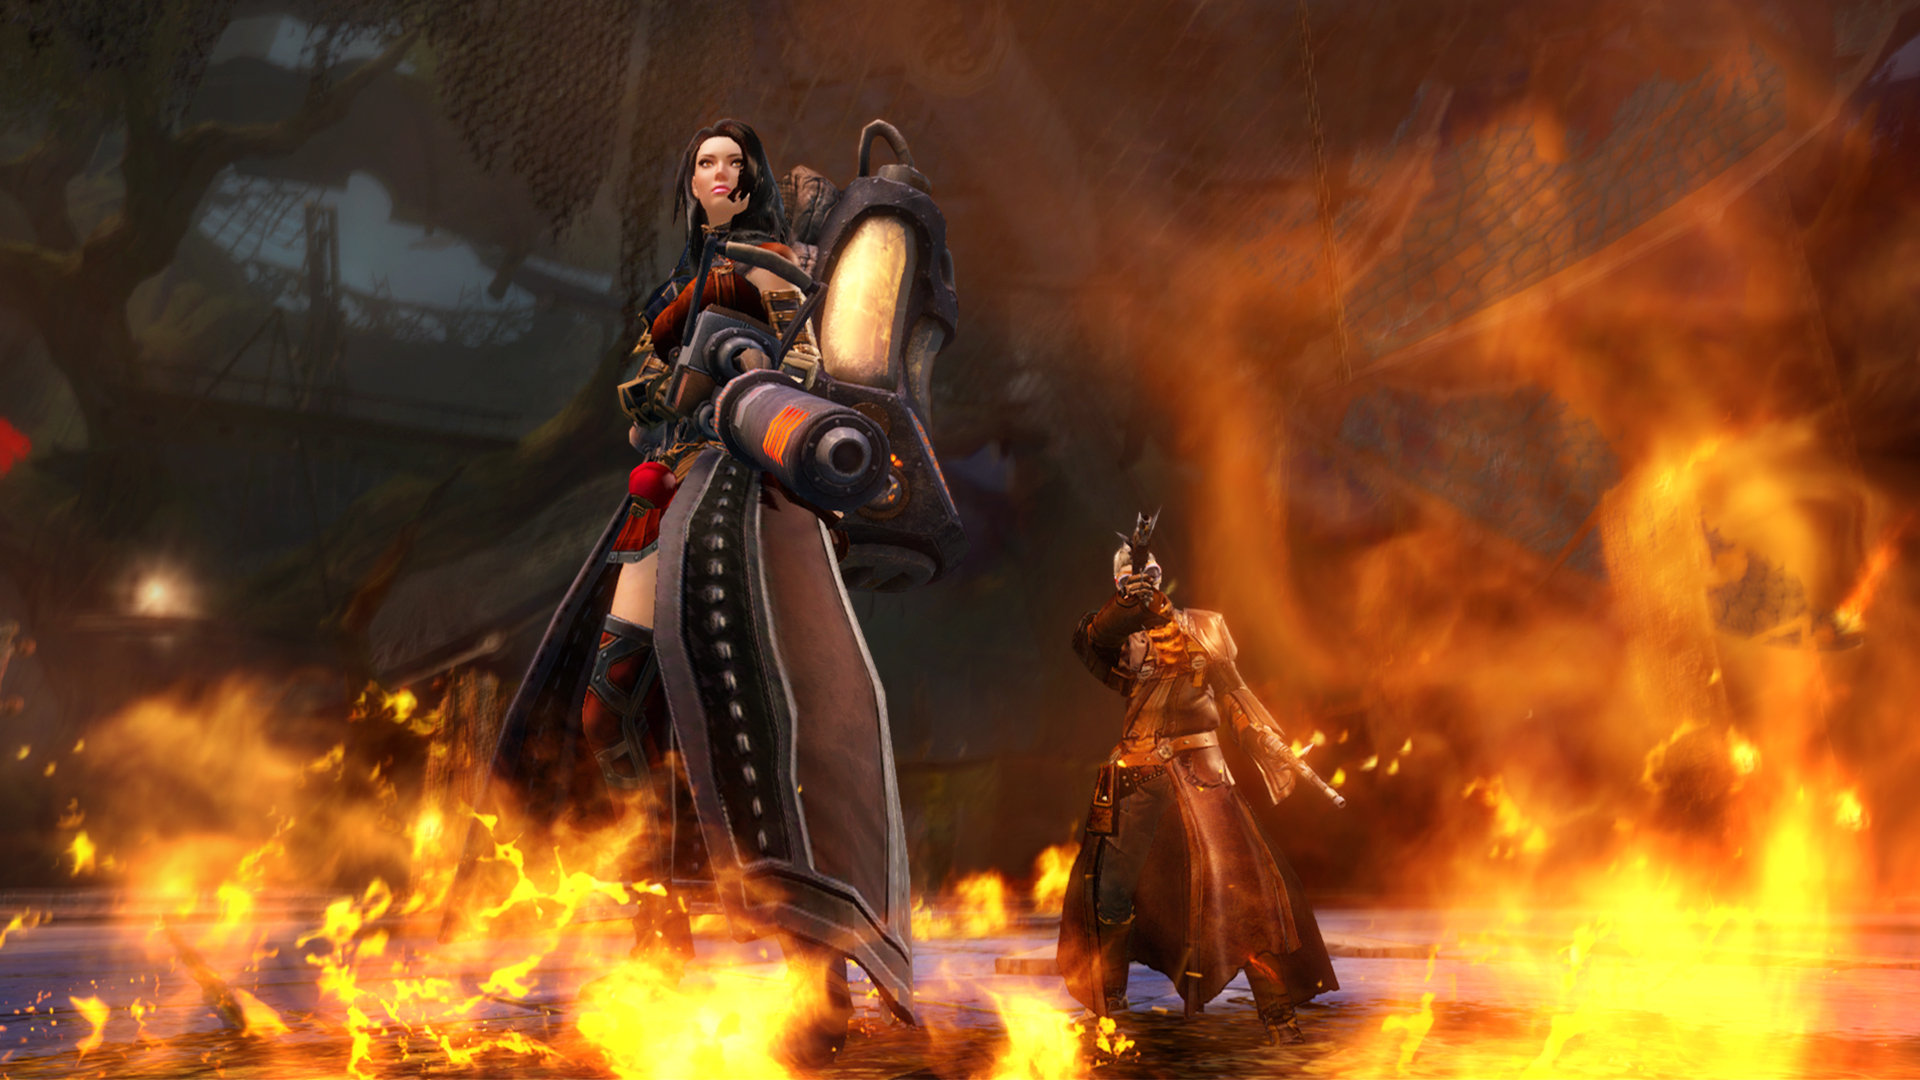 guild wars 2 free to play pvp